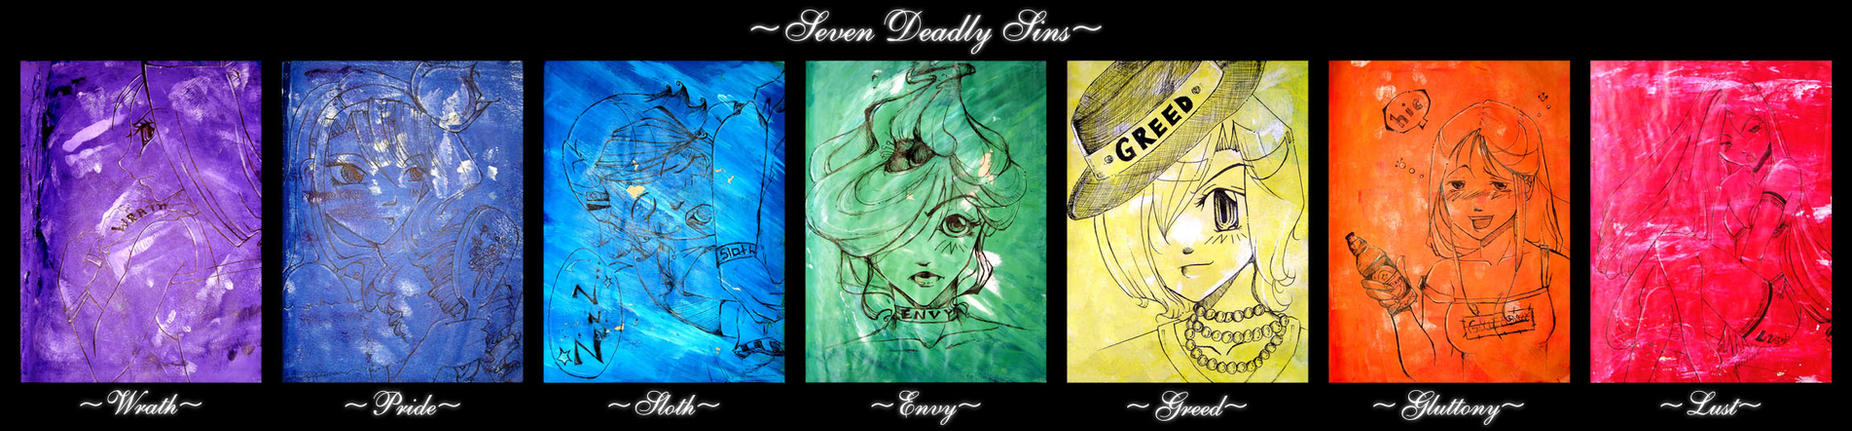 Deadly sins by kristina1234u